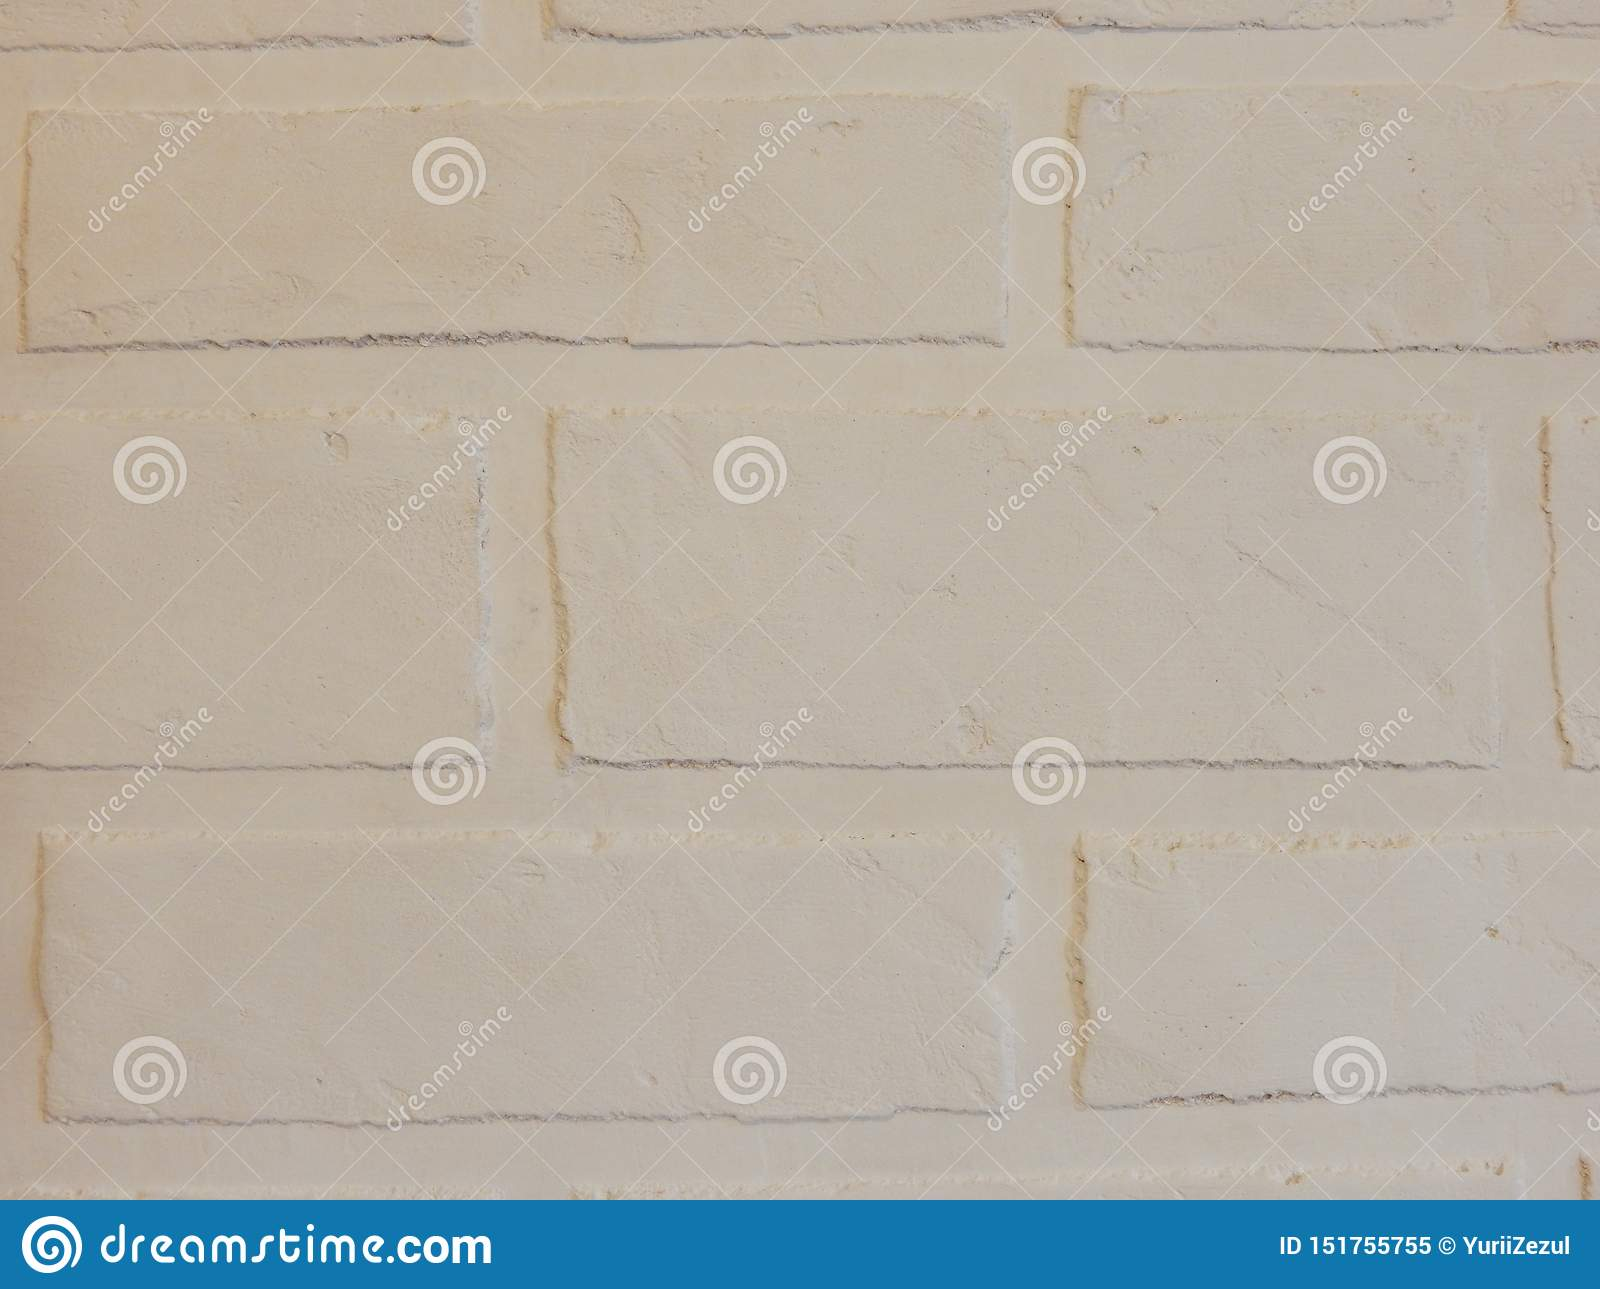 The background wall of this white brick plaster